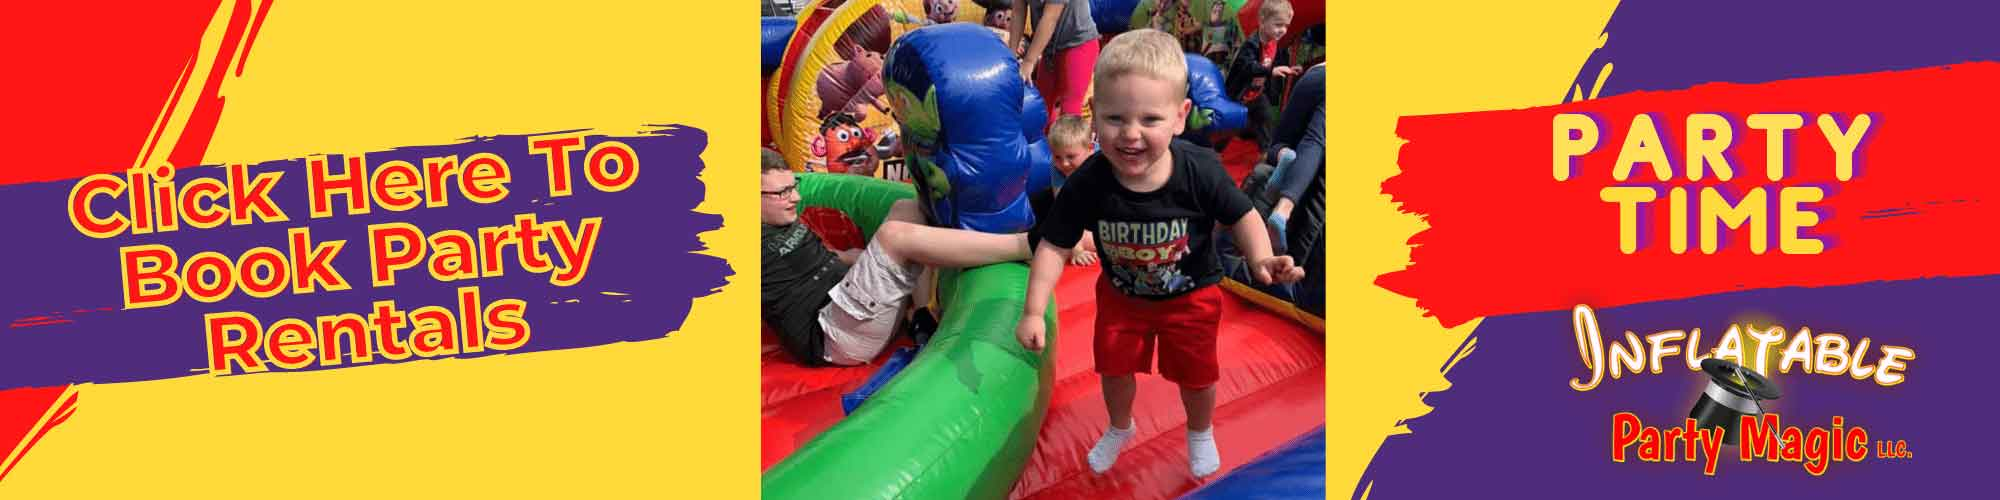 Bounce House and Party Rentals Texas Book Now